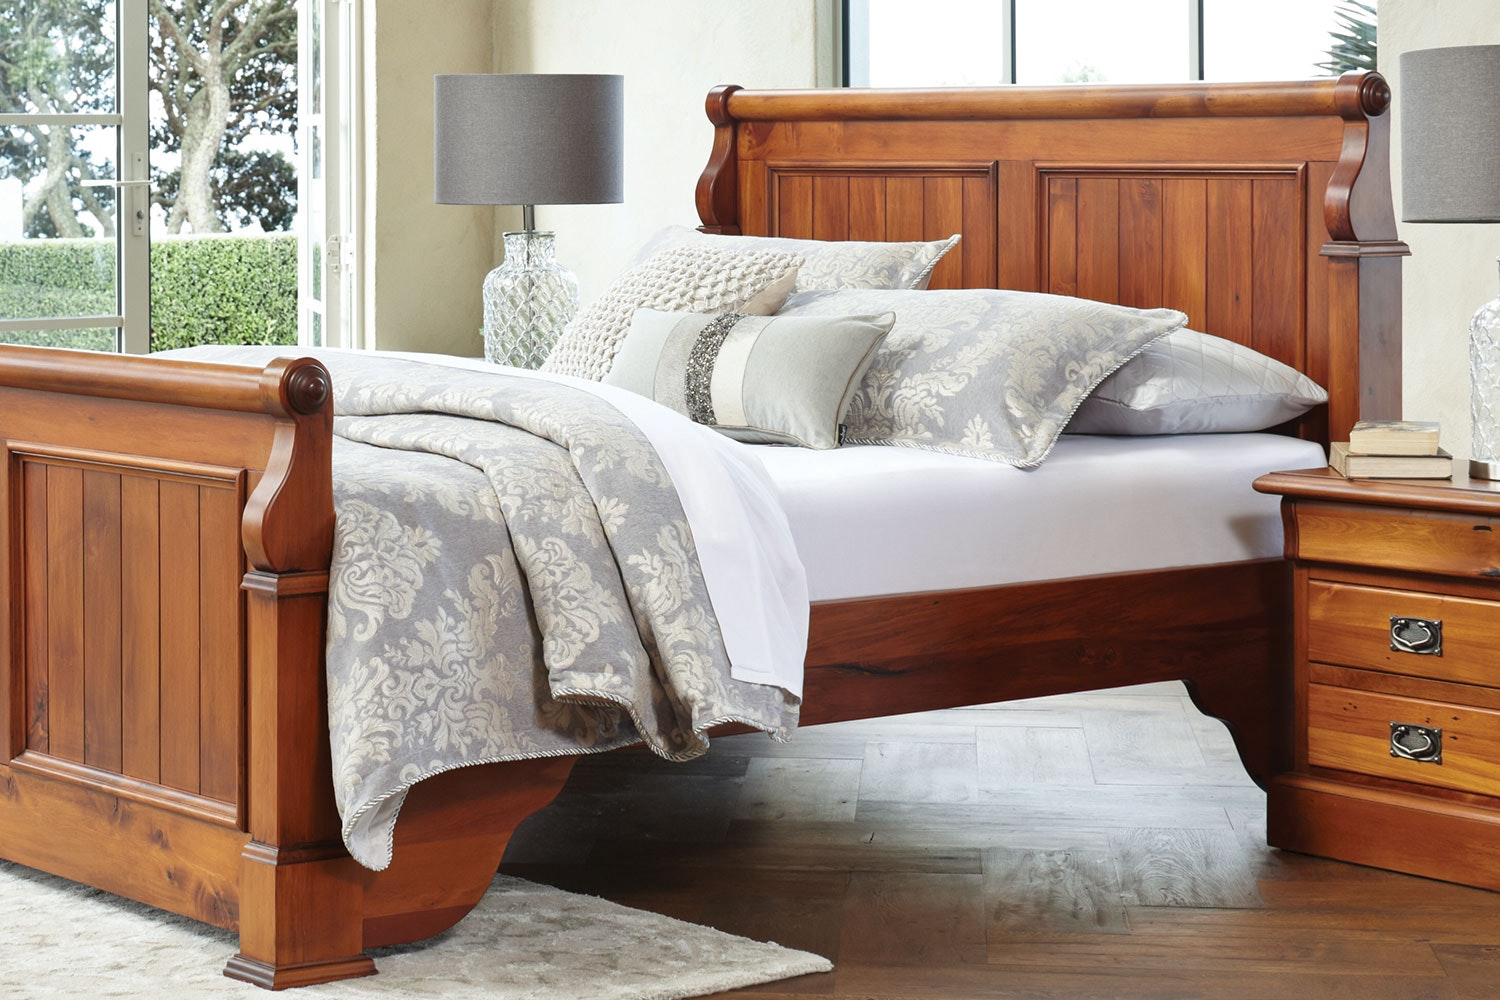 Cammeray Linen Duvet Cover Set by Da Vinci